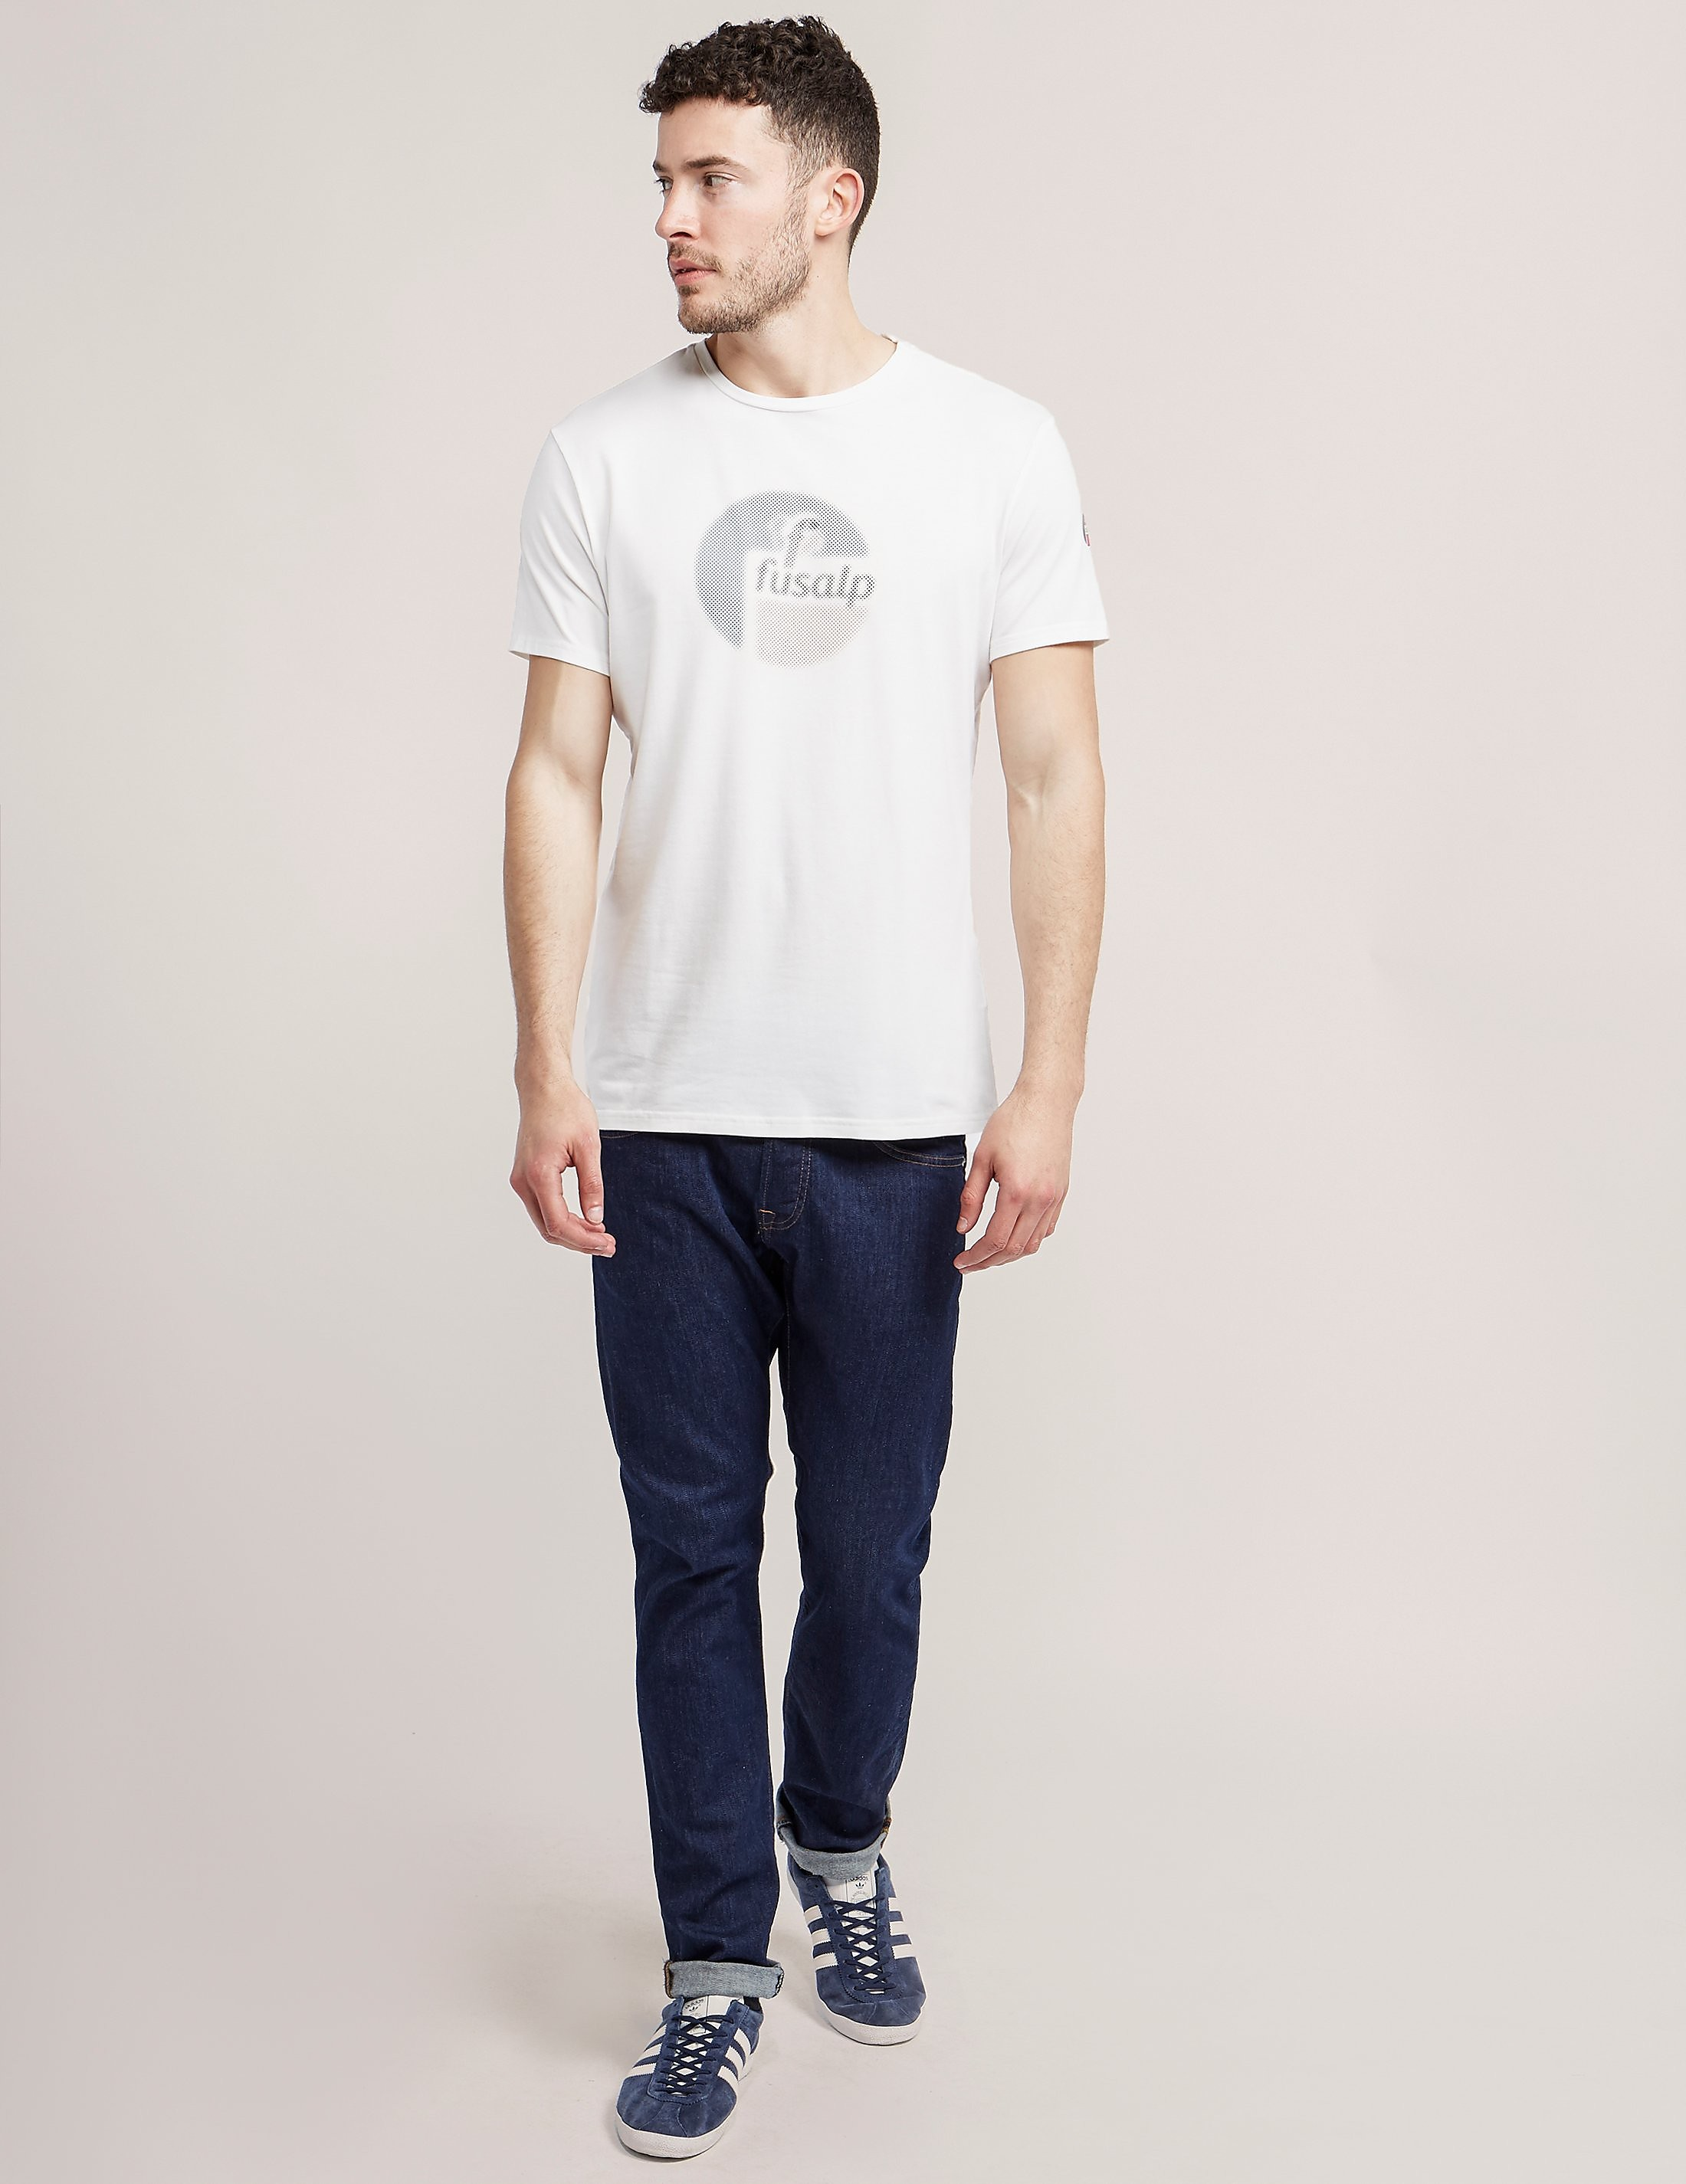 Fusalp Leman Short Sleeve T-Shirt